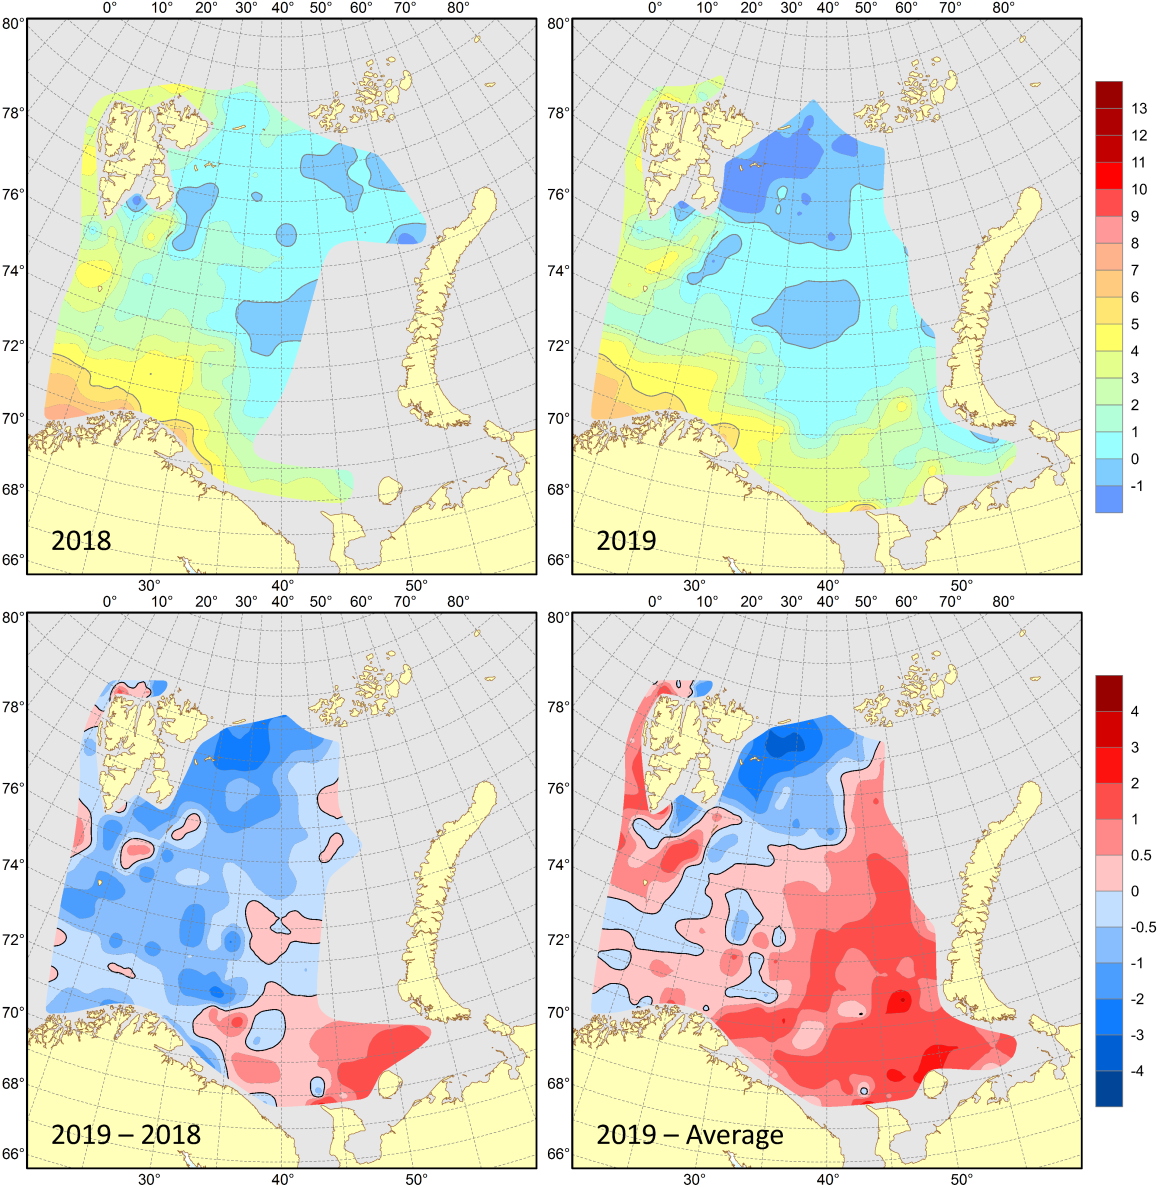 Figure 3.1.10. Bottom temperatures (°C) in August–September 2018 (upper left) and 2019 (upper right), their differences between 2019 and 2018 (lower left, °C) and anomalies in August–September 2019 (lower right, °C).t